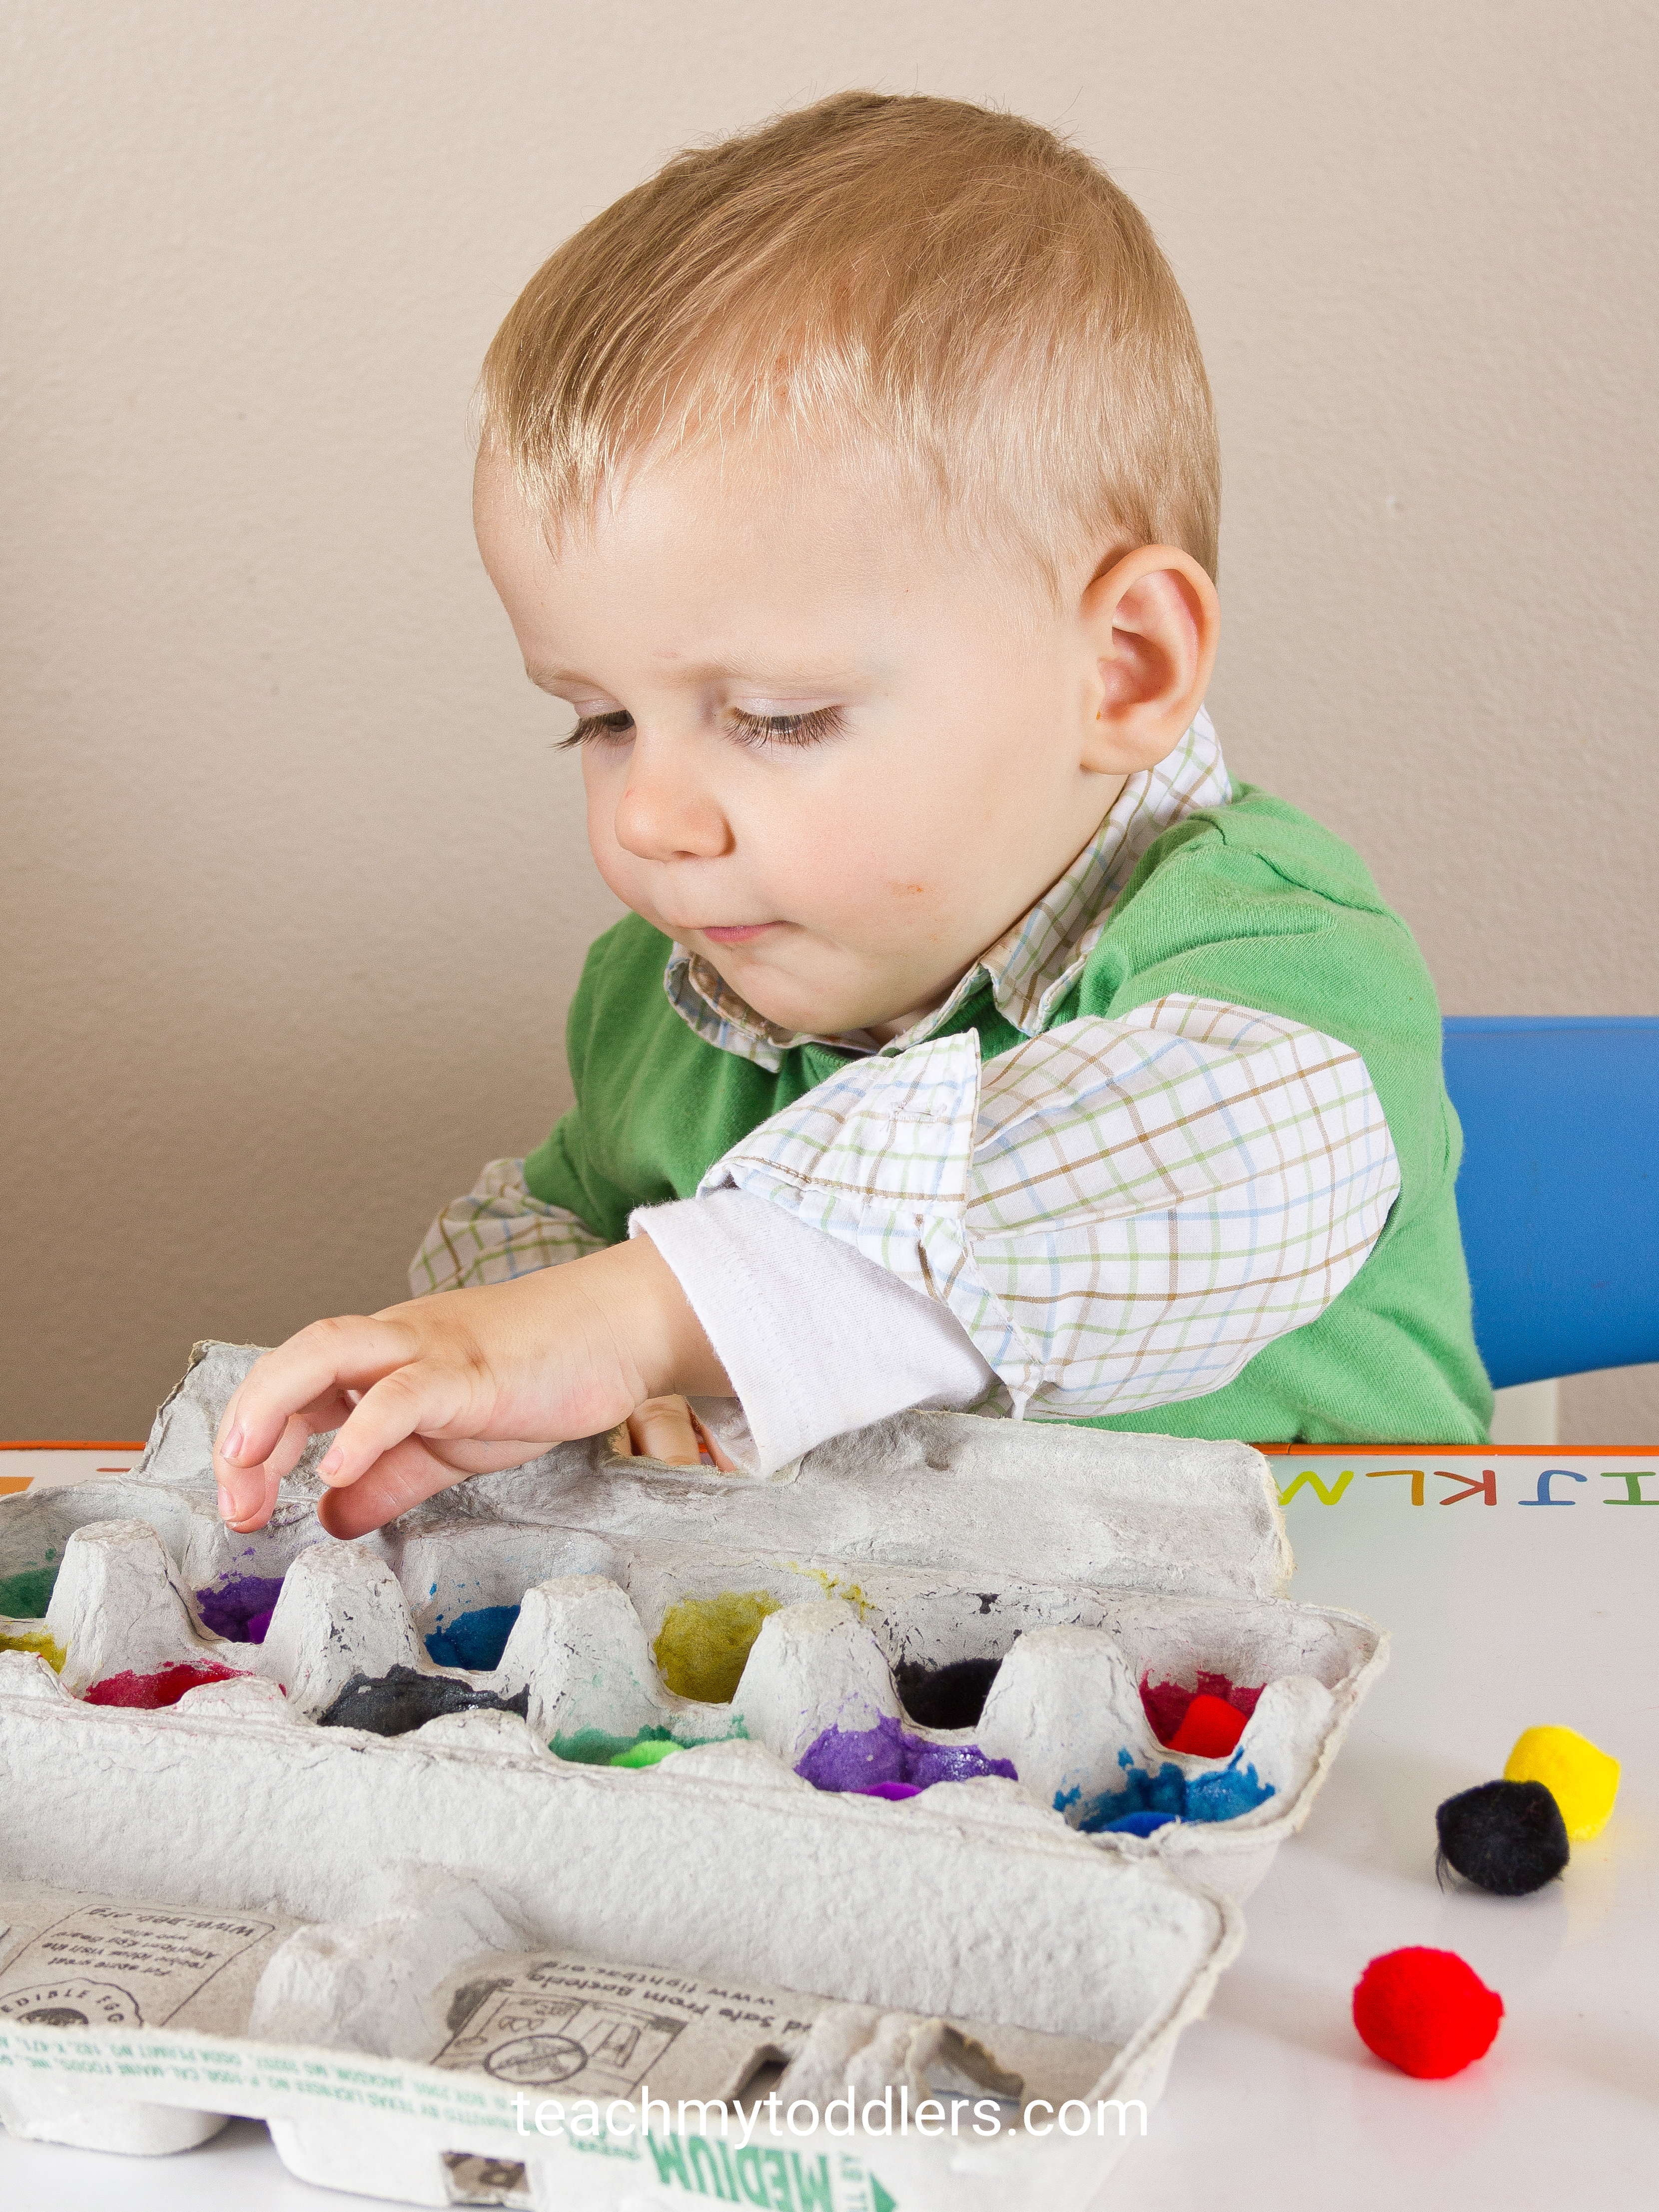 Your toddler can learn colors with these pom poms and egg carton